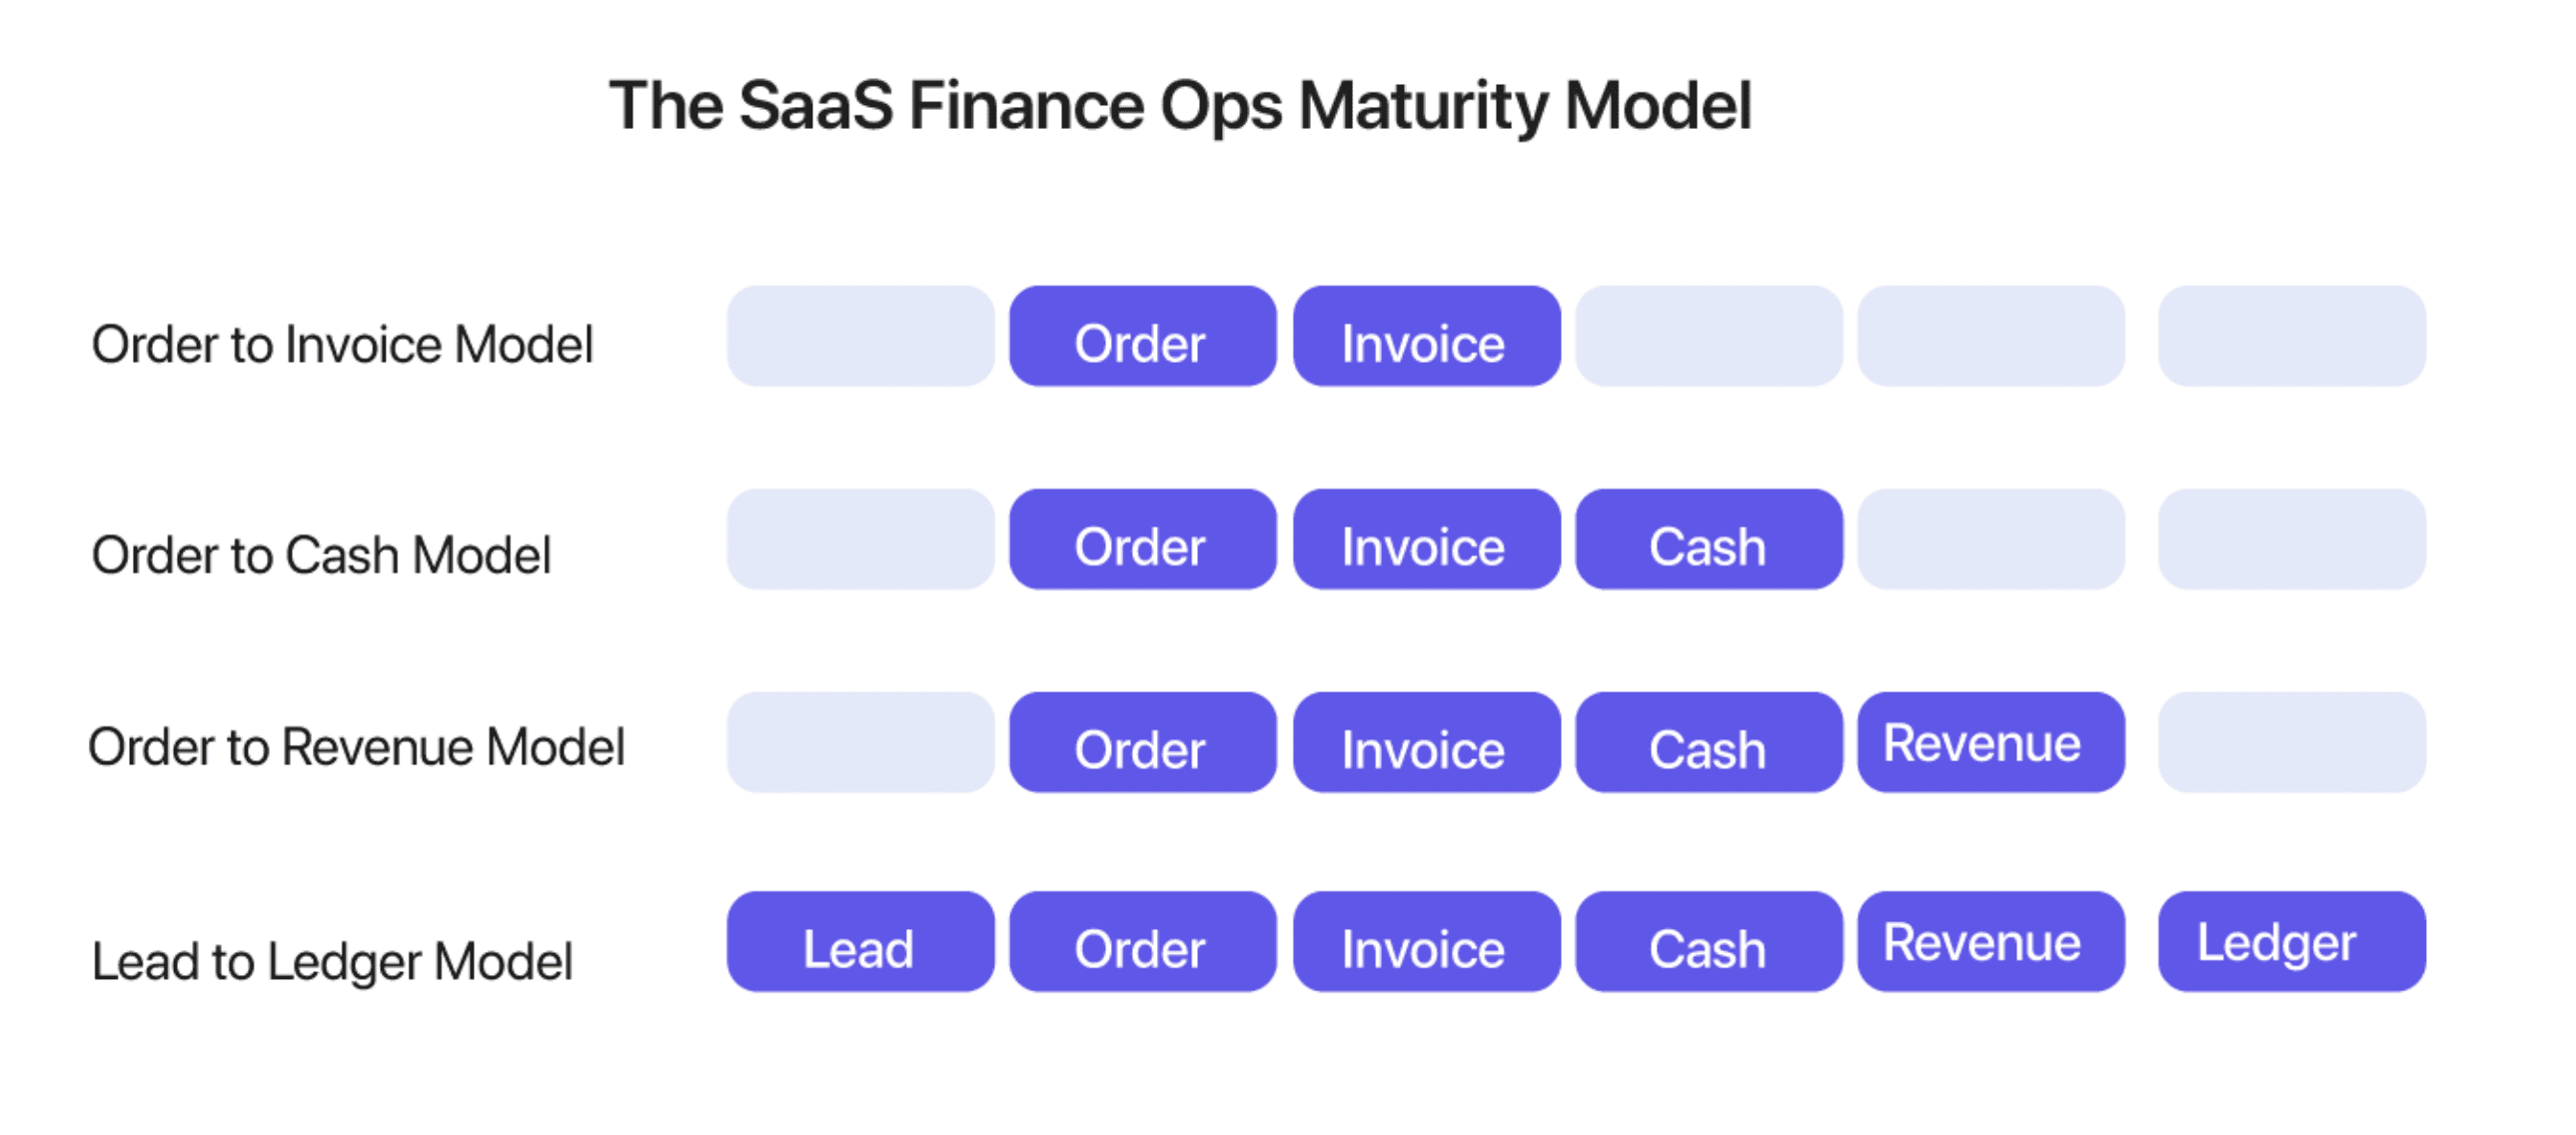 The SaaS Finance Ops Maturity Model